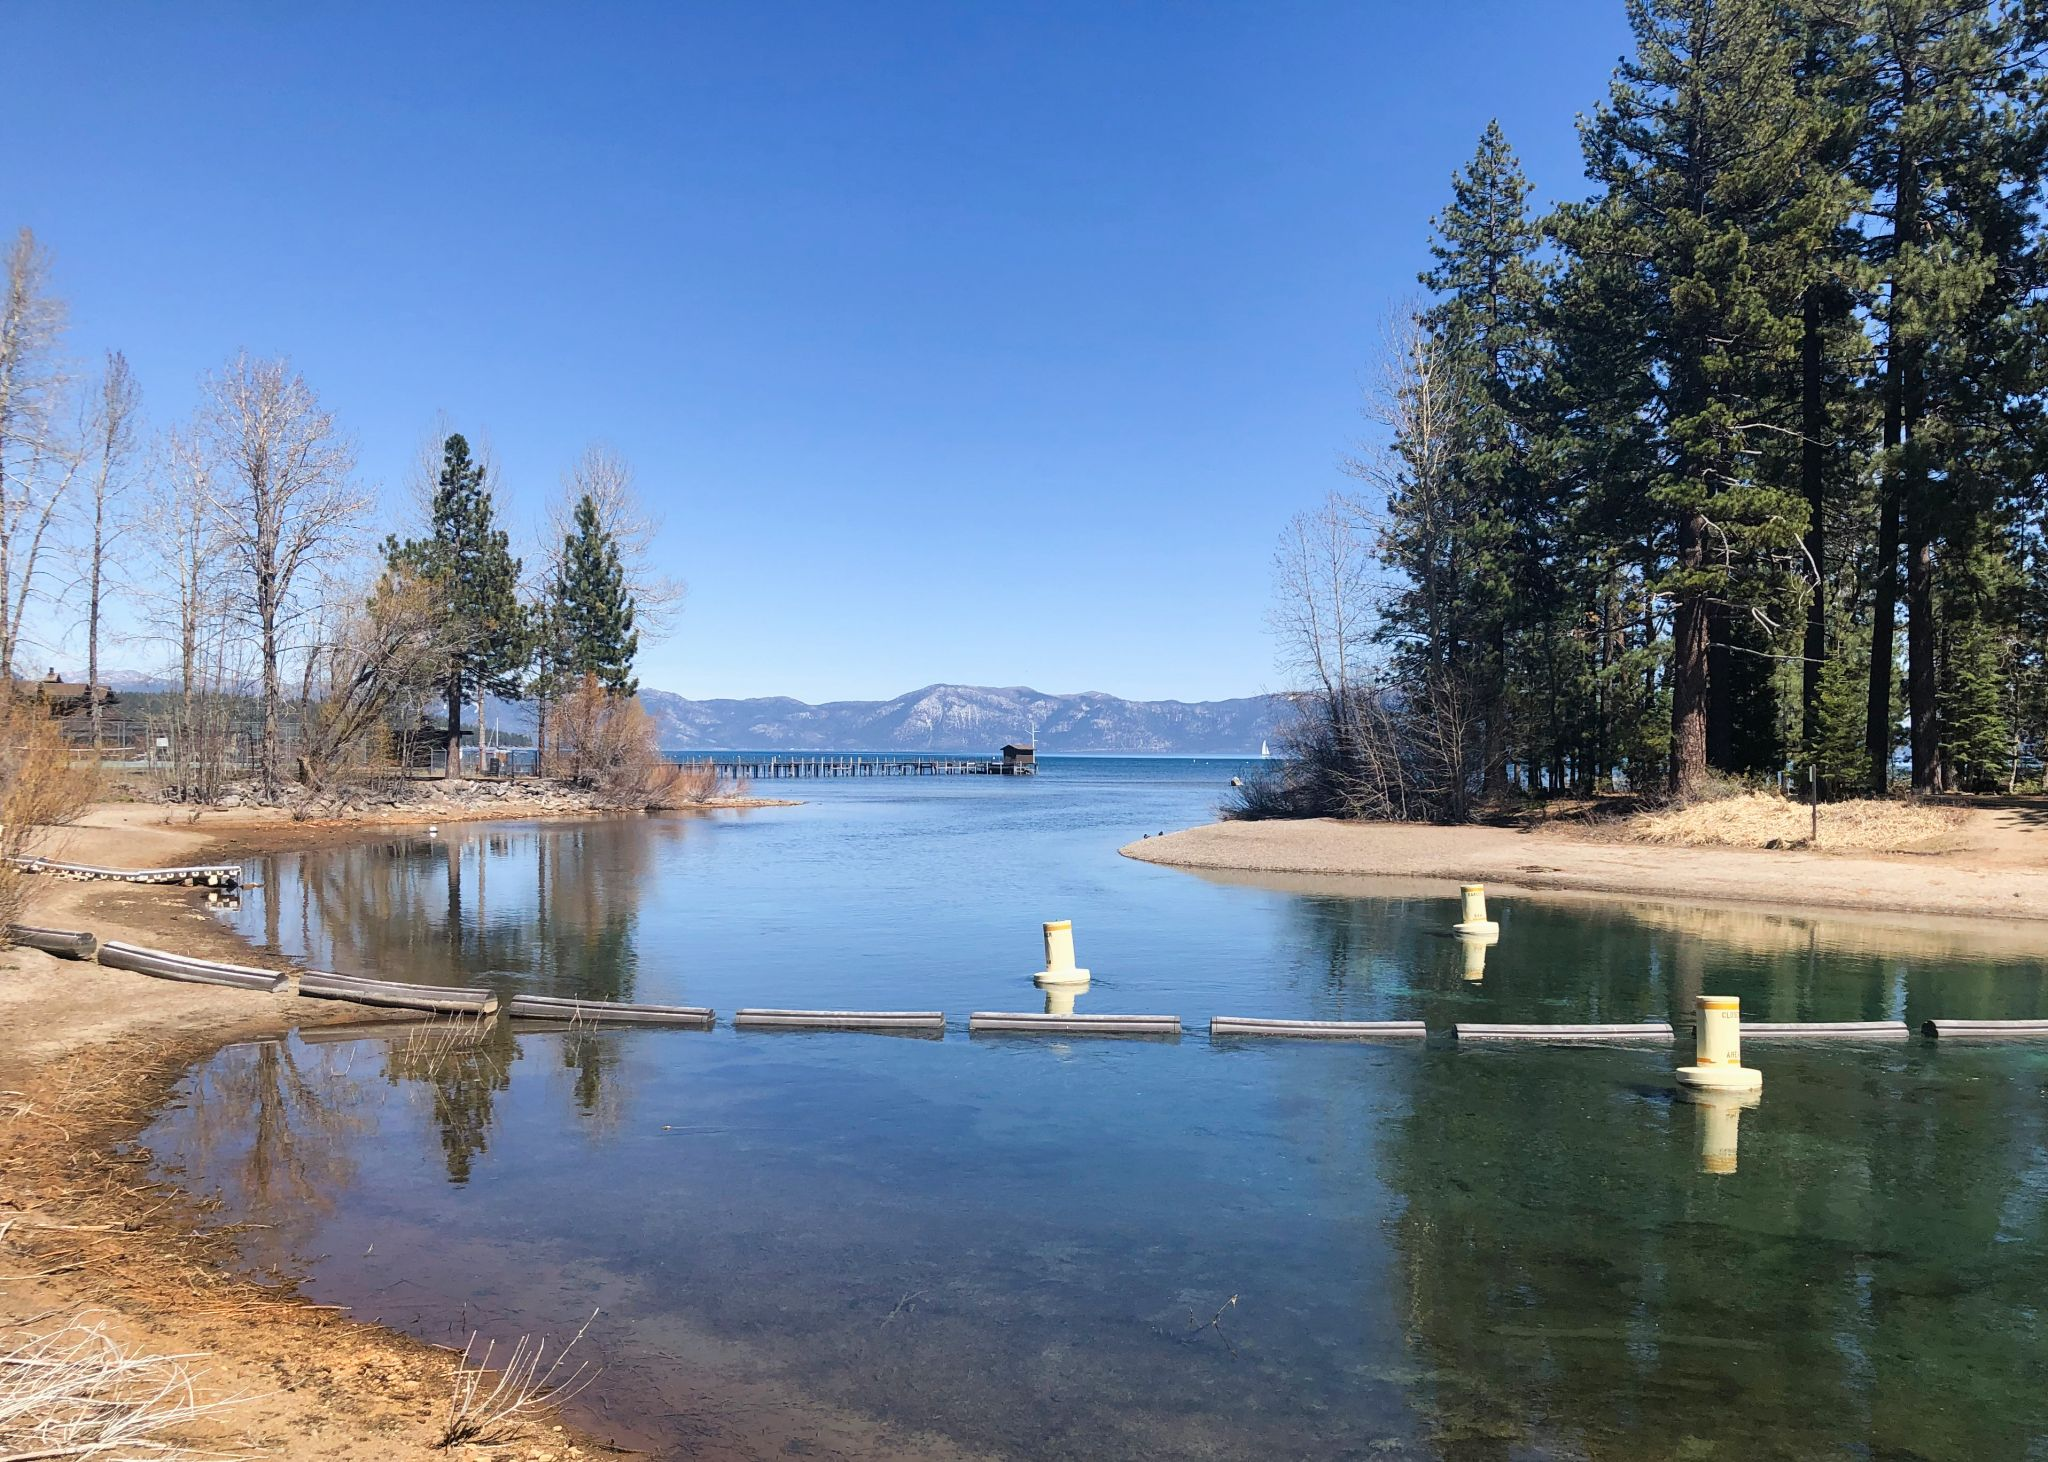 Amid drought, Lake Tahoe's water levels are lowest in five years